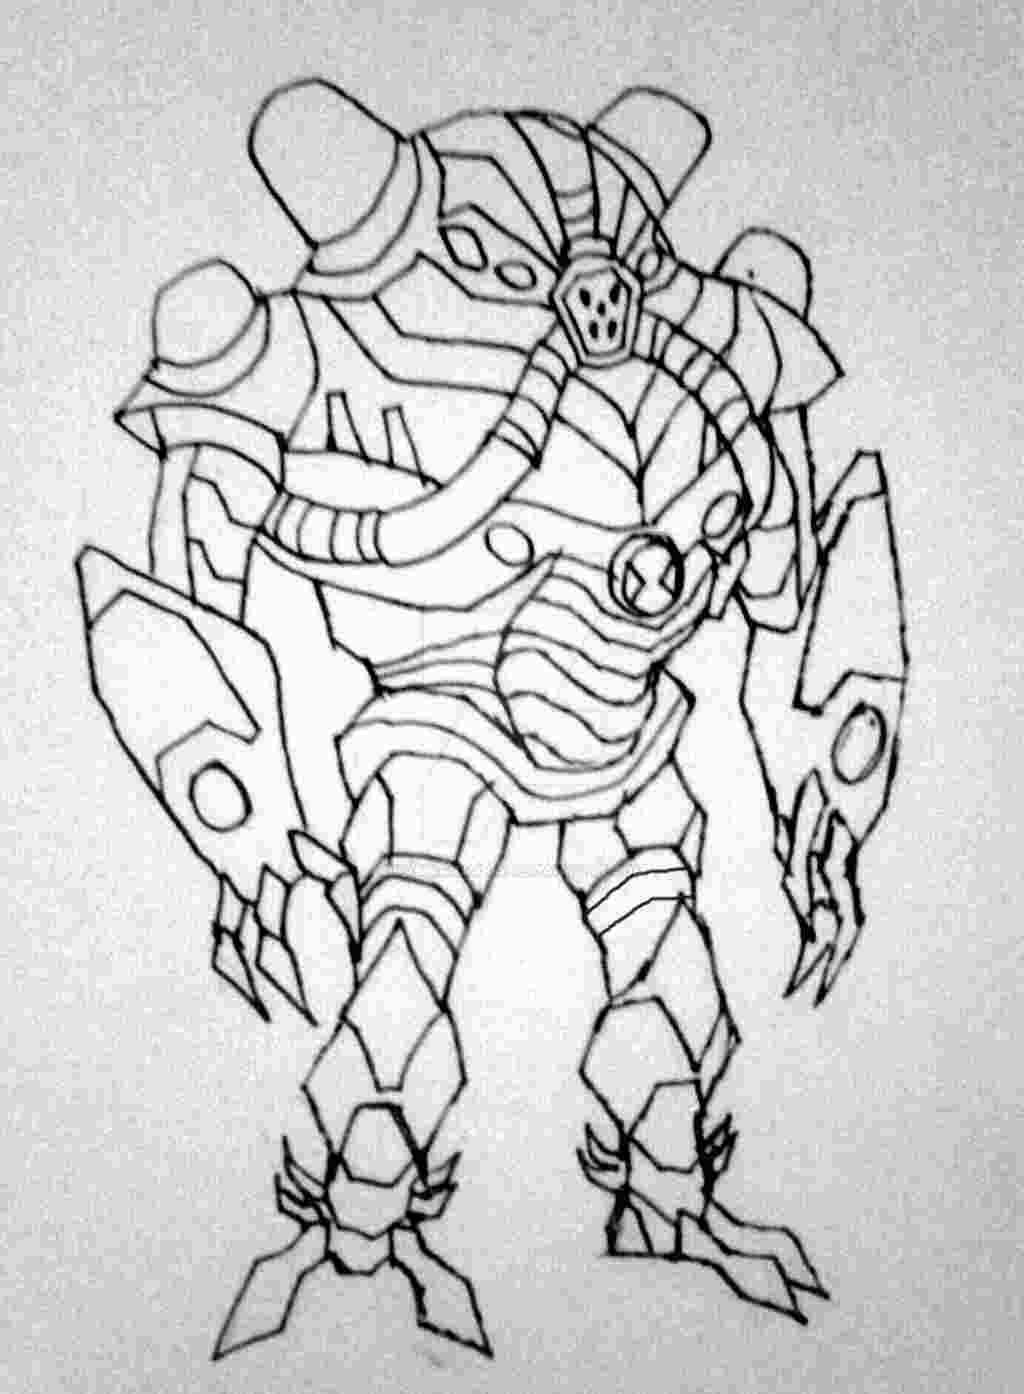 Ben 10 Overflow Coloring Cartoon Coloring Pages Coloring Pages Tangled Coloring Pages